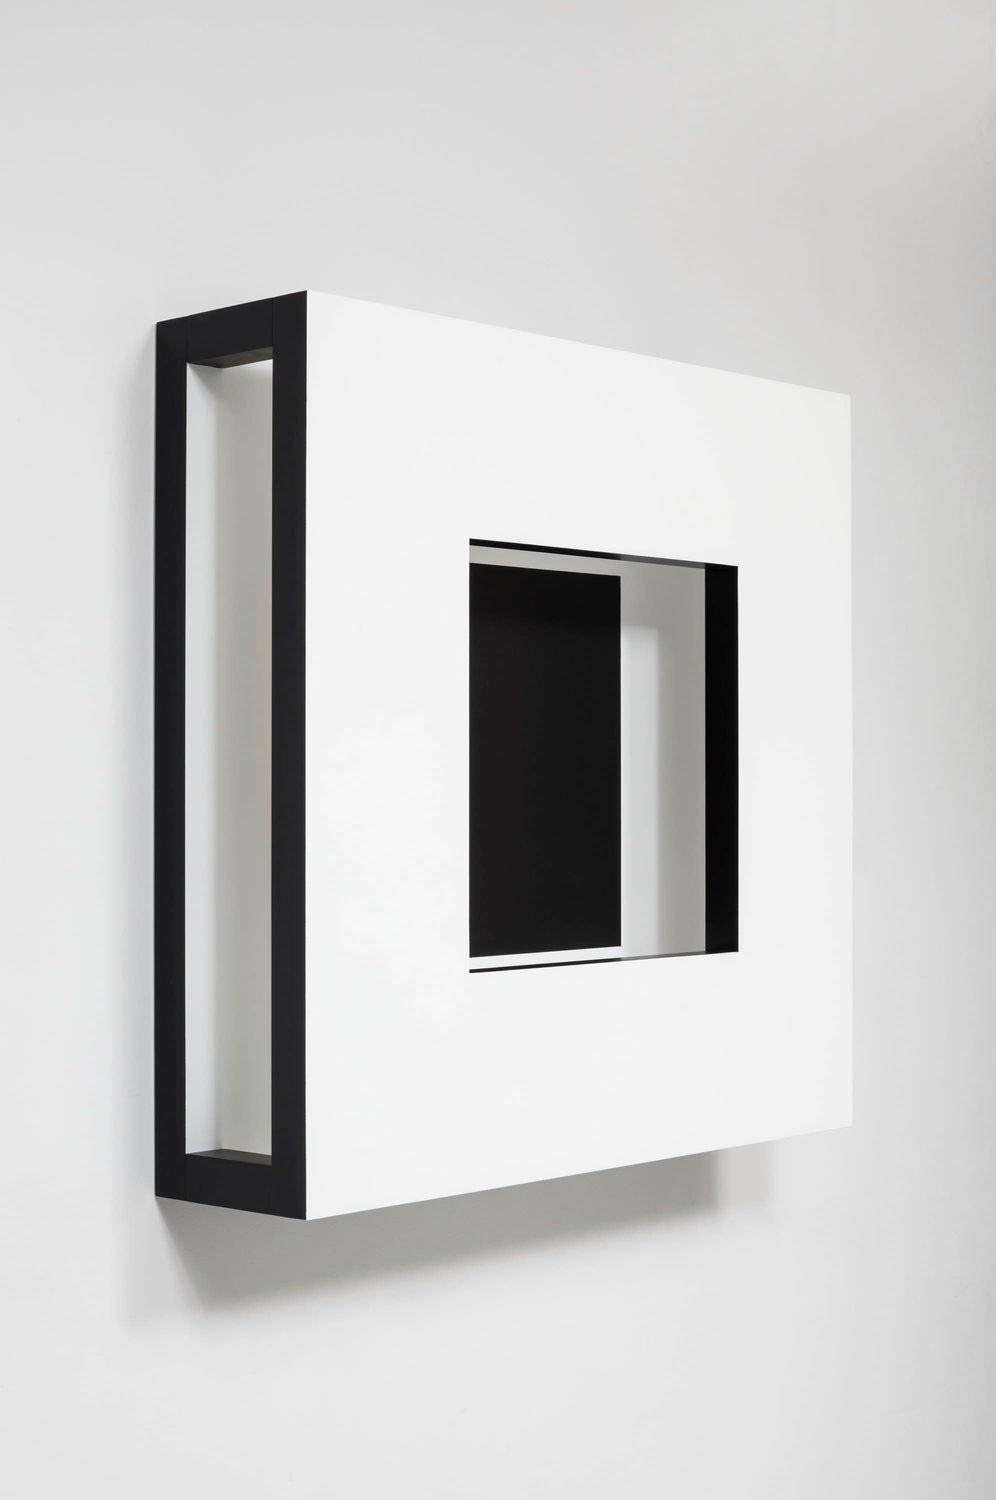 Adrian Piper. Recessed Square. 1967.